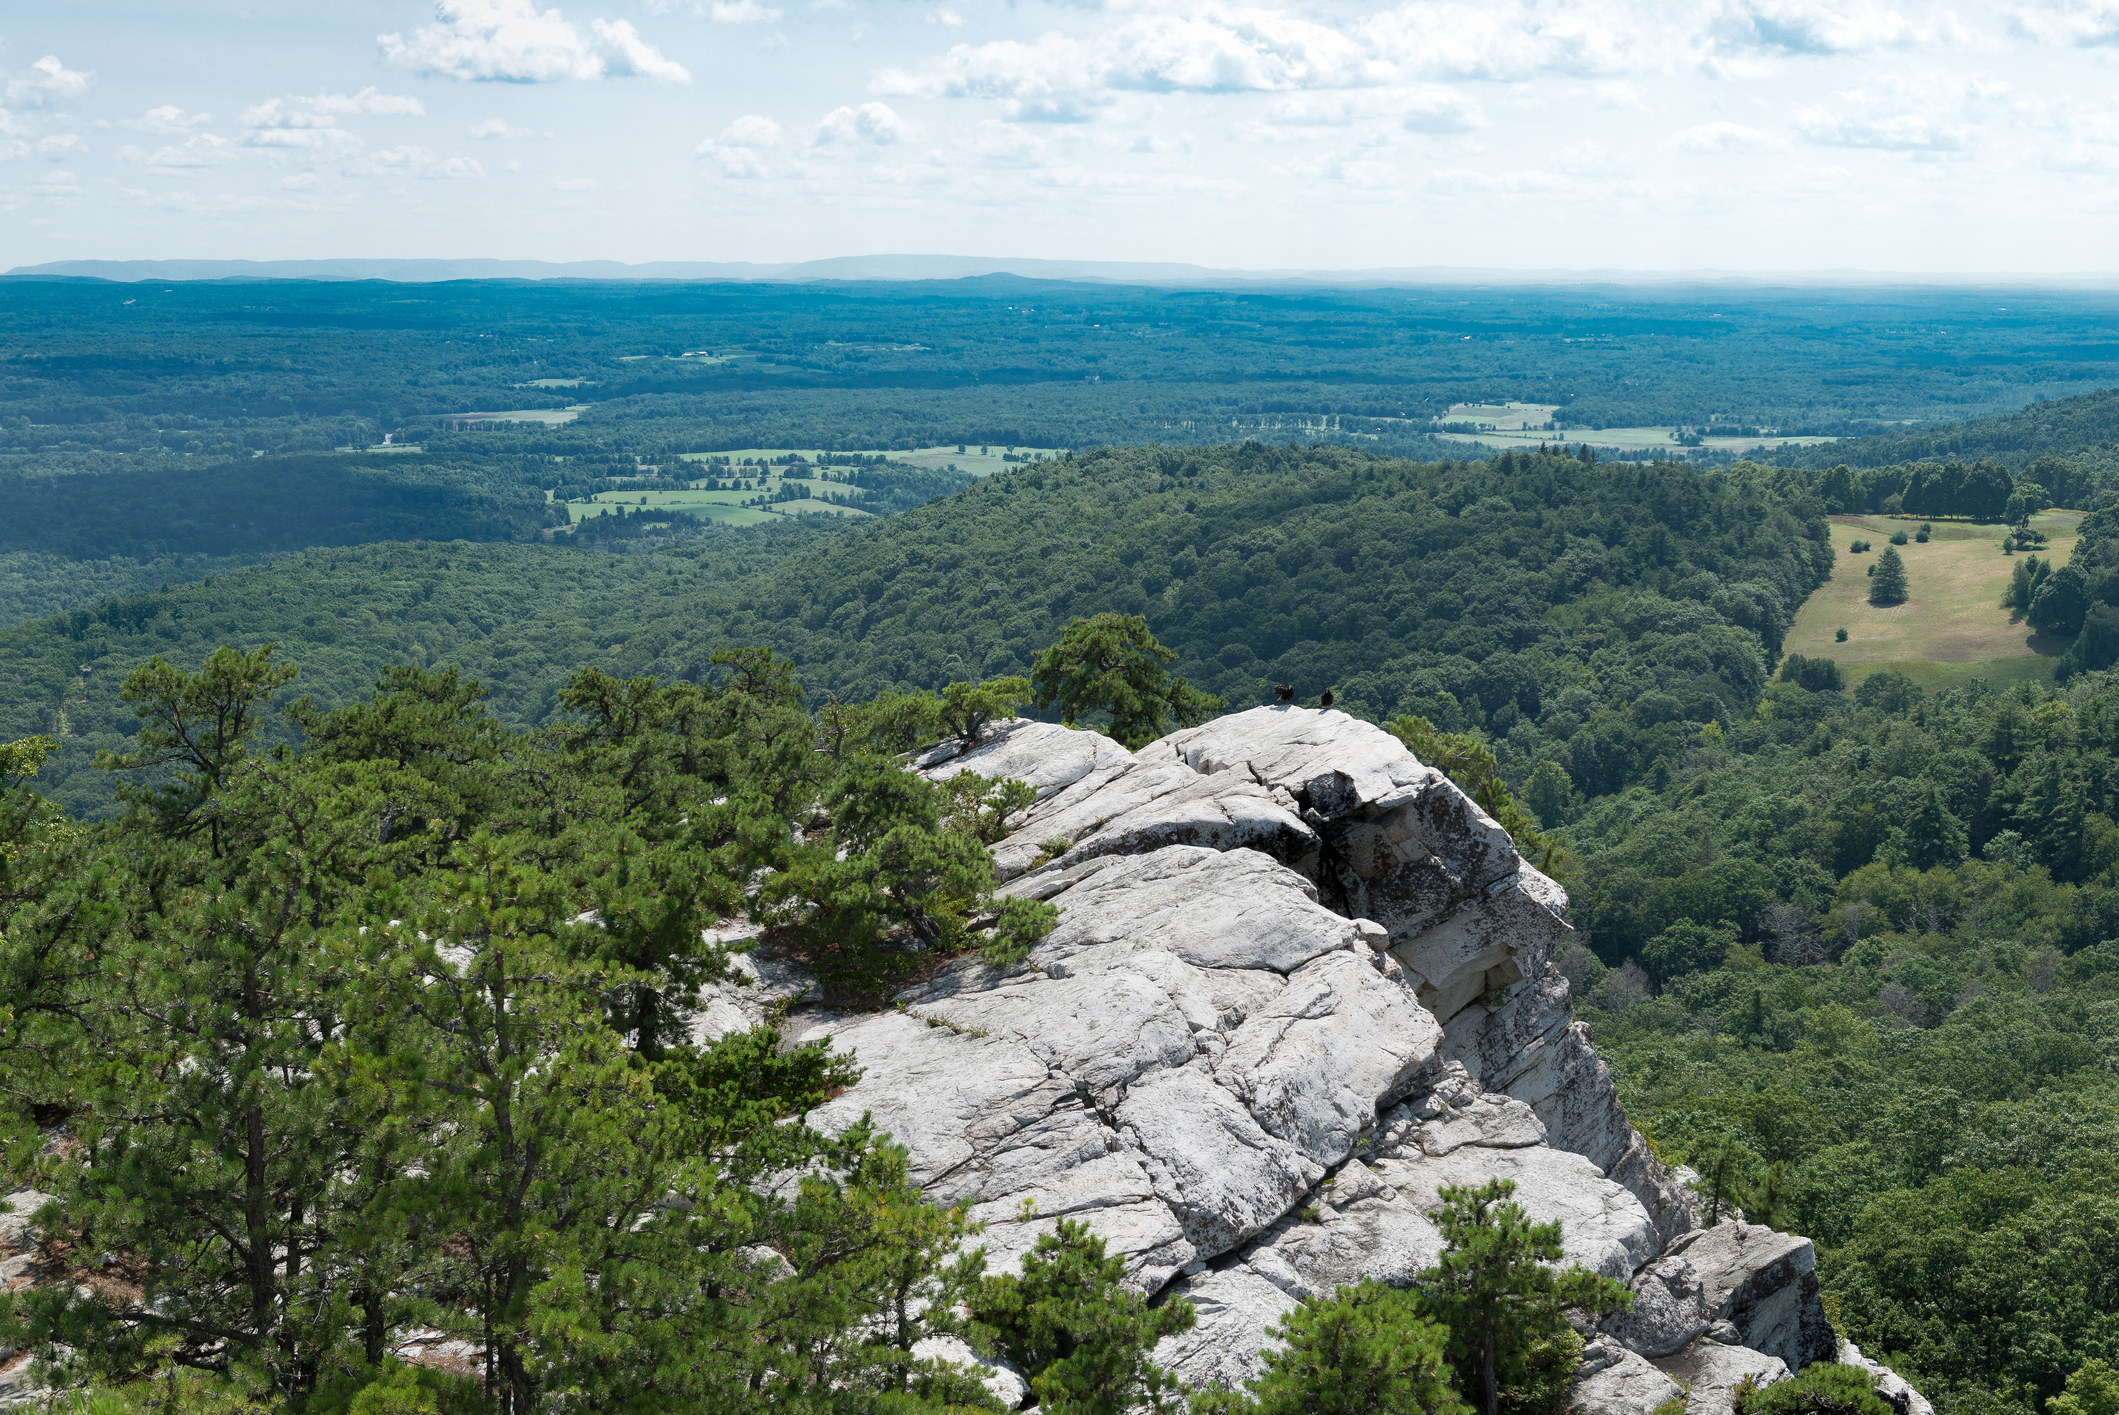 view of a white rocky cliff surrounded by lush trees over Mohonk Preserve